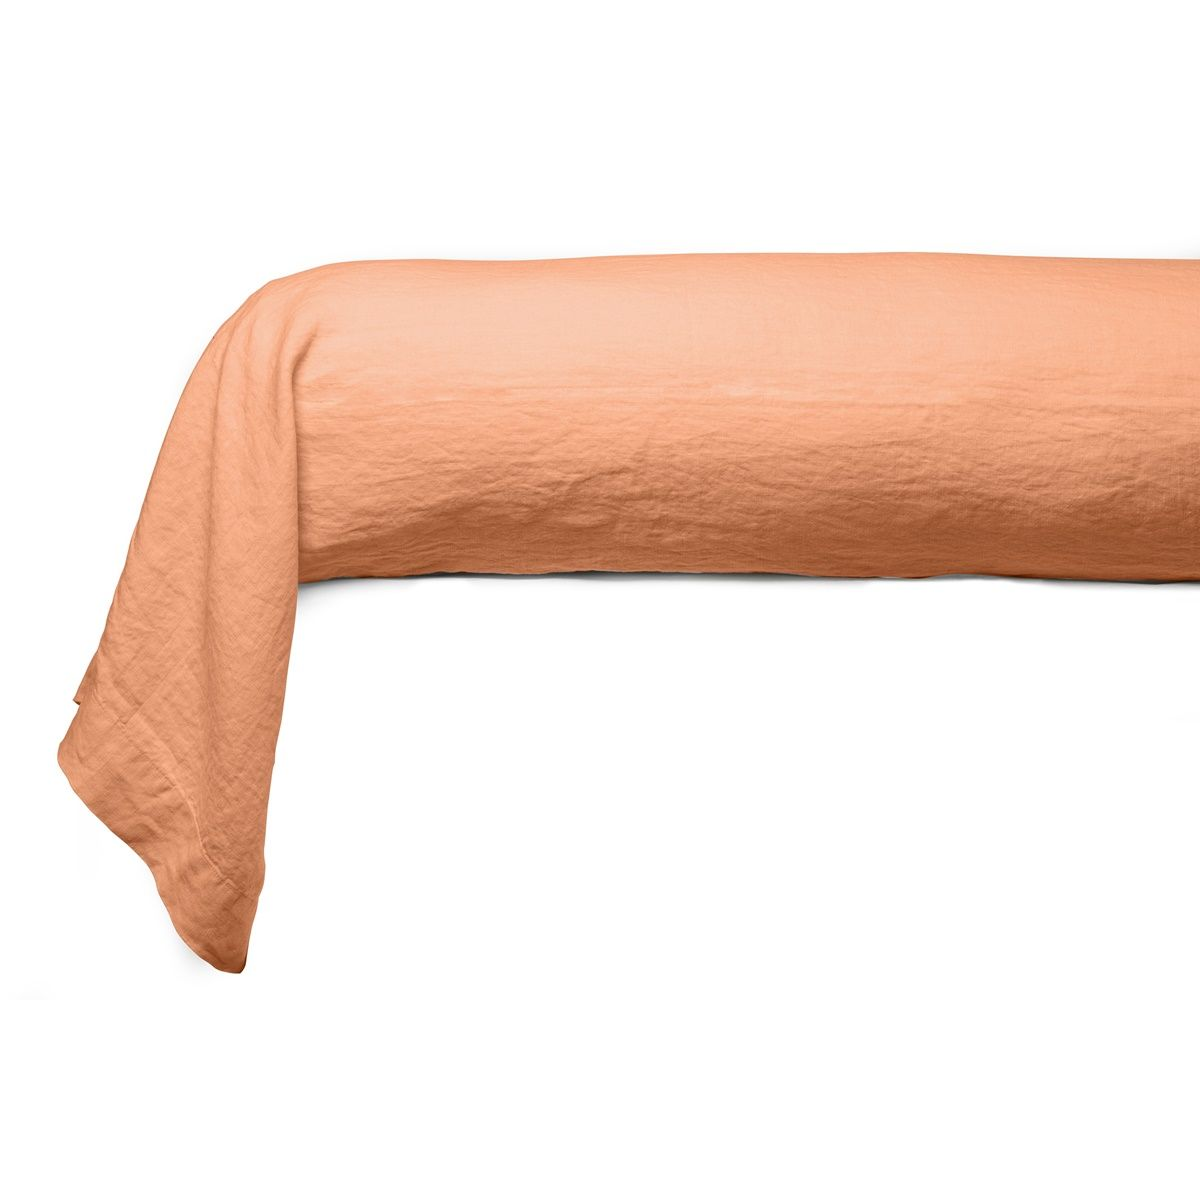 Bolster case Washed Linen orange | Linge de lit | Tradition des Vosges